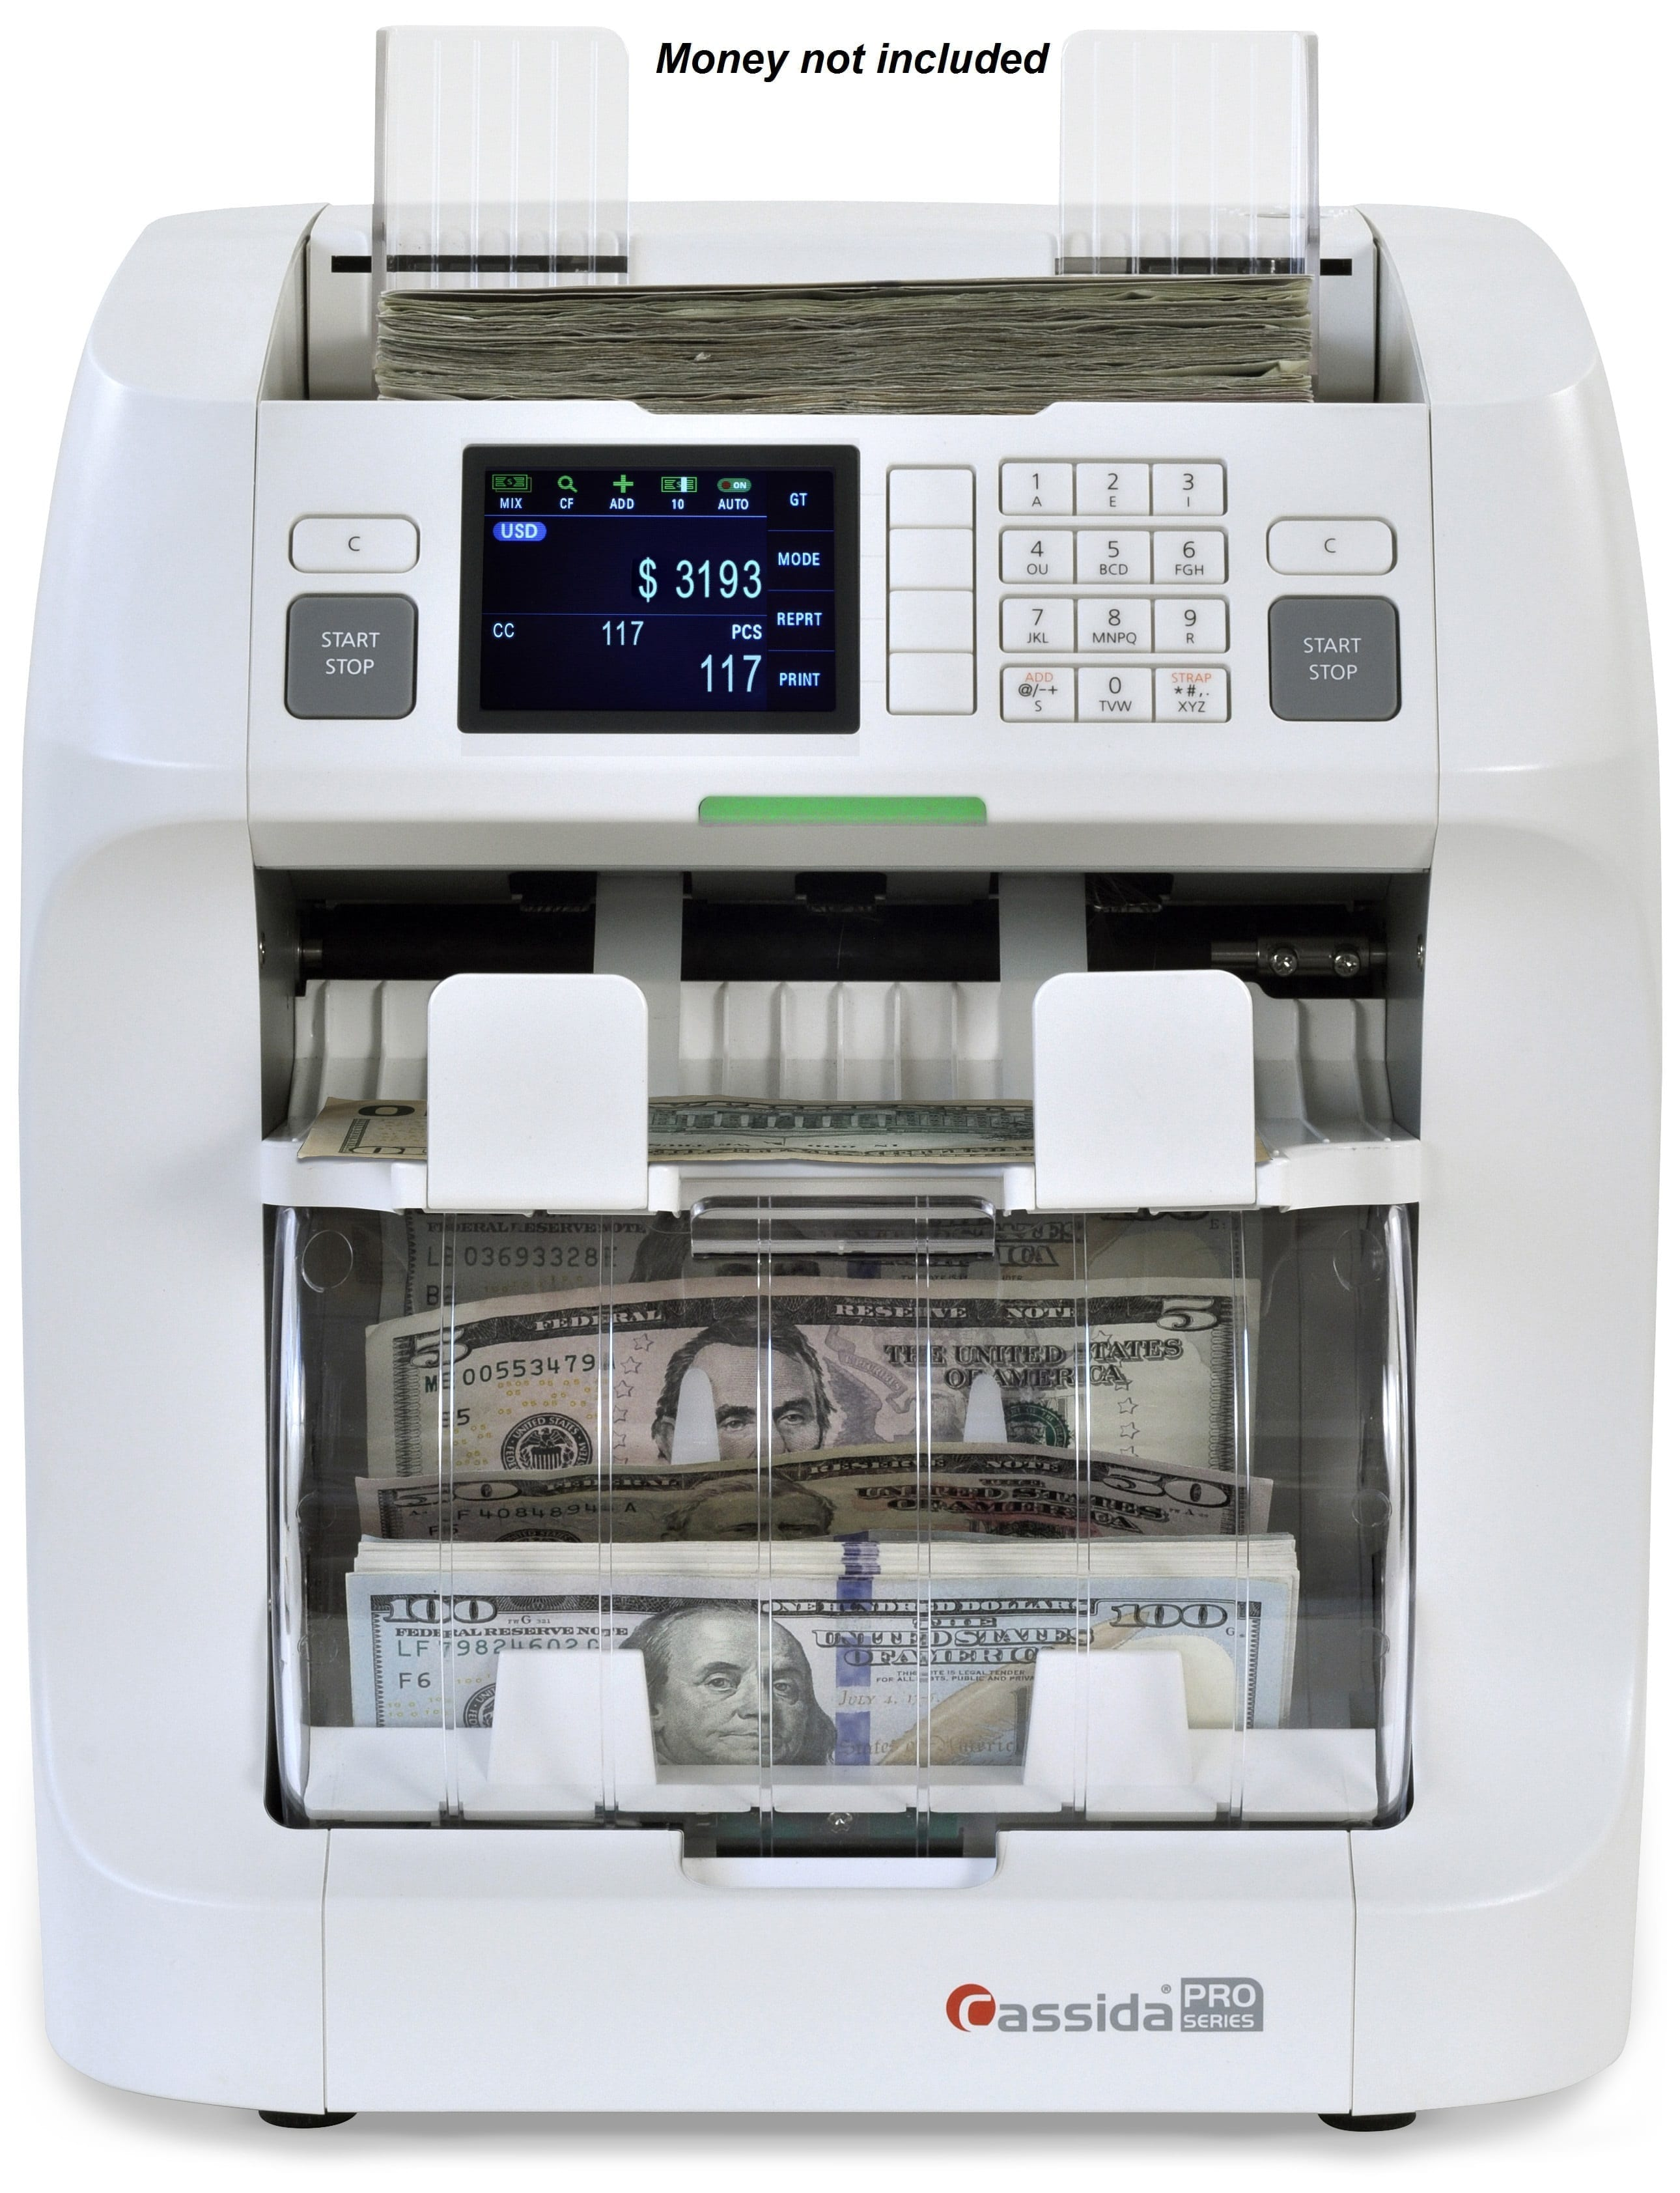 Cassida Zeus 2-Pocket Currency Discriminator counts up to 1000 notes per minute with Counterfeit Detection